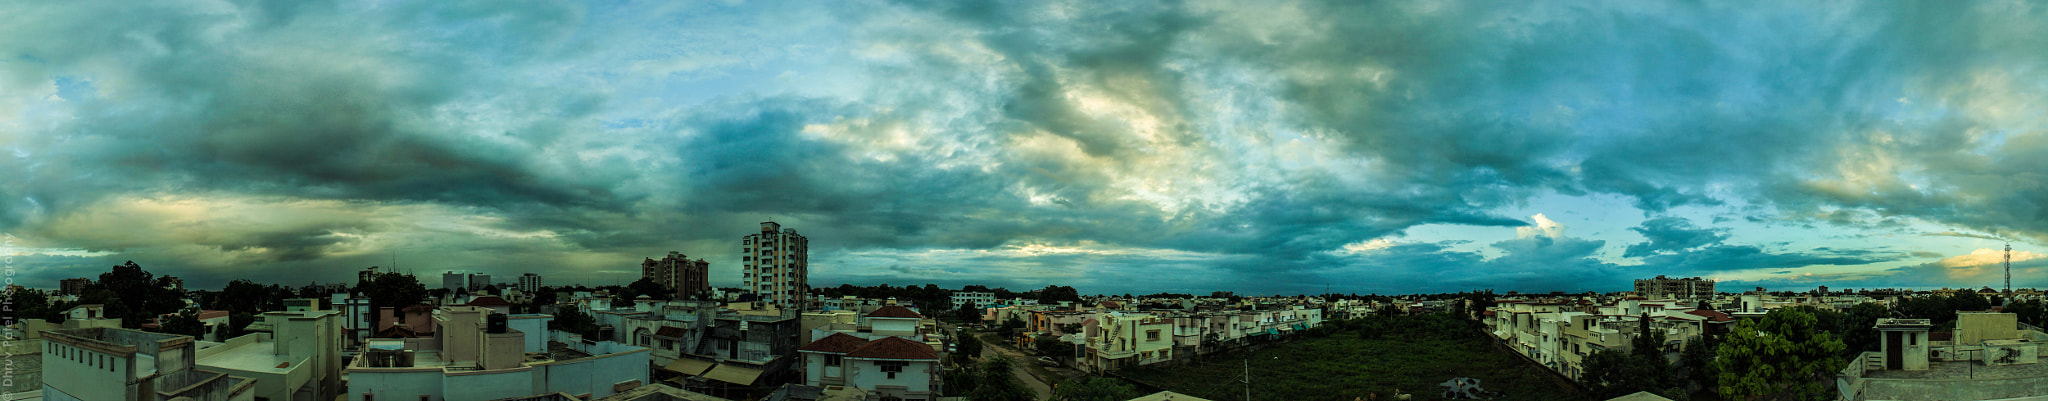 Photograph Storm Coming - HDR Panorama. by Dhruv Patel on 500px